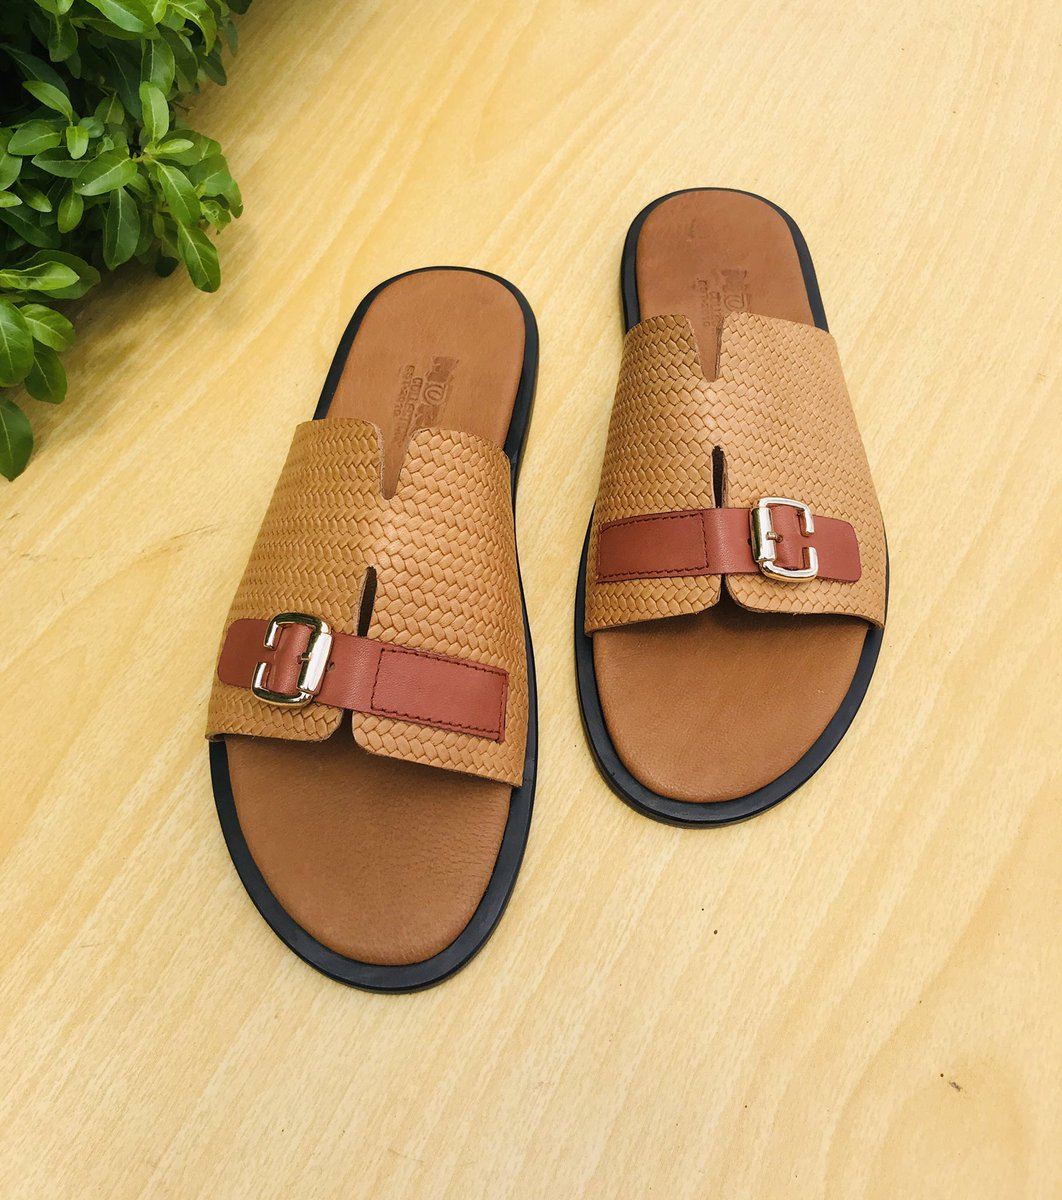 I sell different types of handmade shoes and slippers. They are well crafted. dm or whatsapp:08066525432. @8k each. Nation wide delivery. Pls retweet if this appears on your tl . My customers are on your TL. Fatima Usman rolls Royce #backtoschoolpic.twitter.com/PSXVW2jlYV